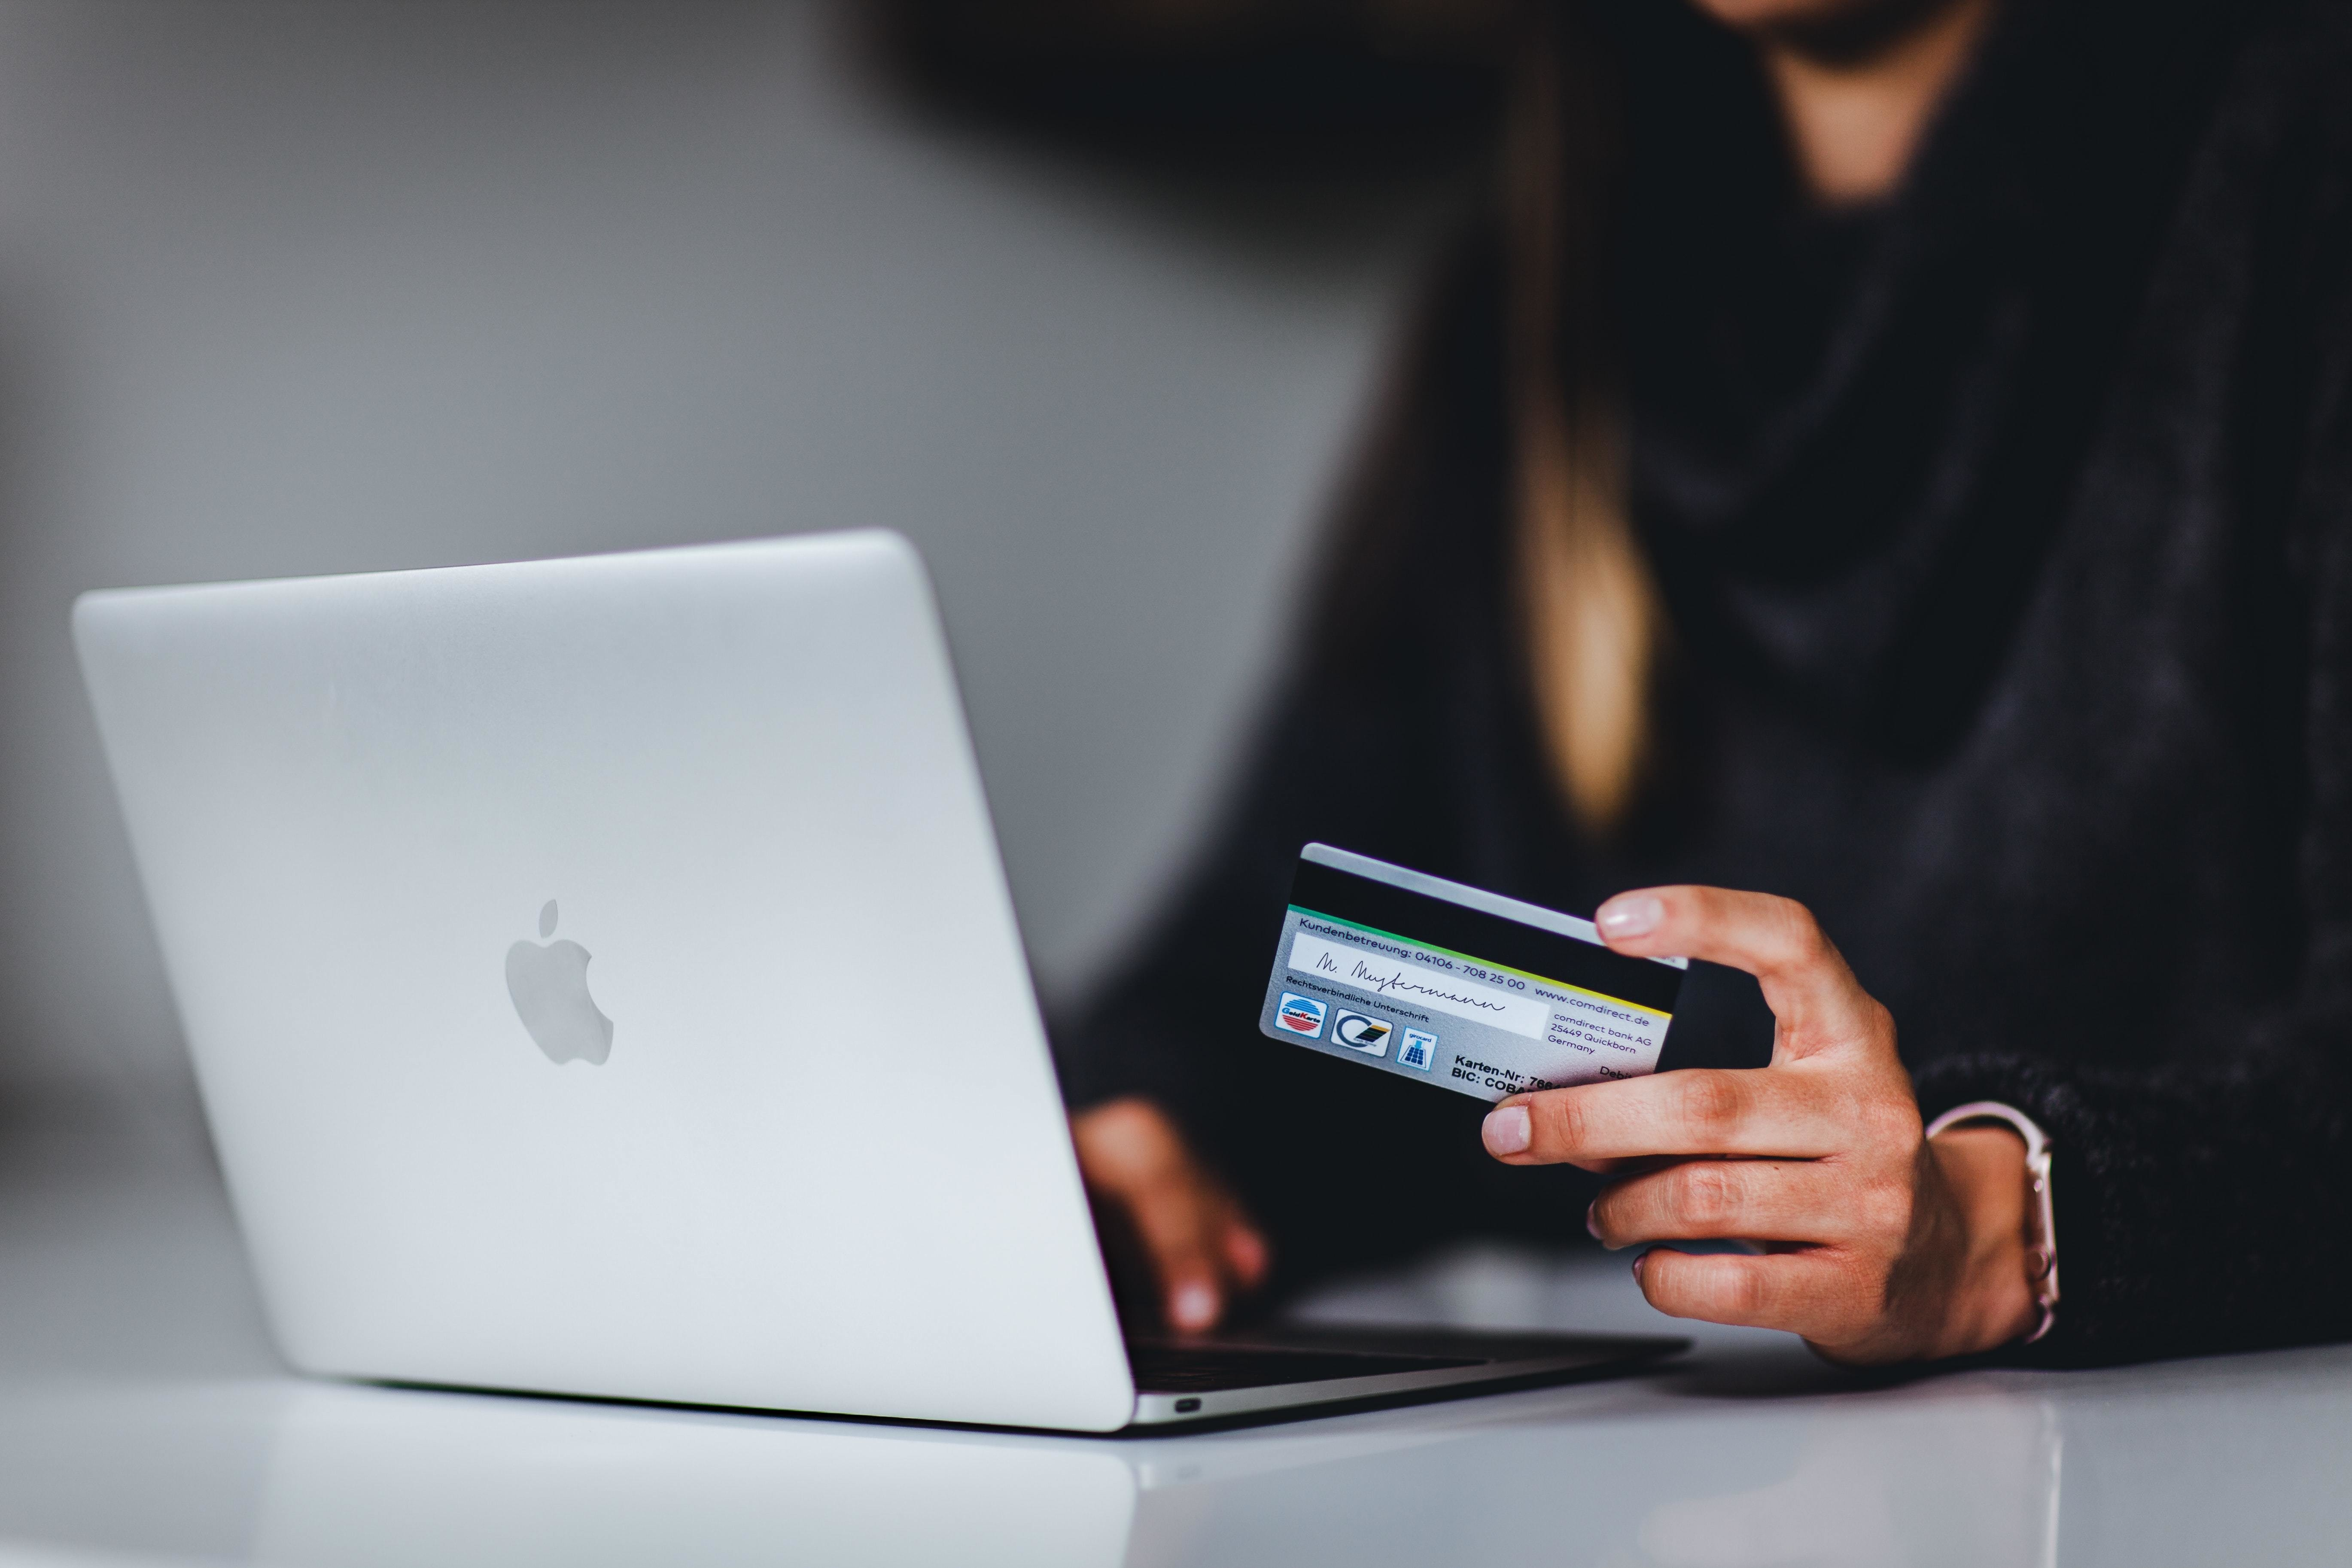 a picture of a woman using her credit card to buy something online